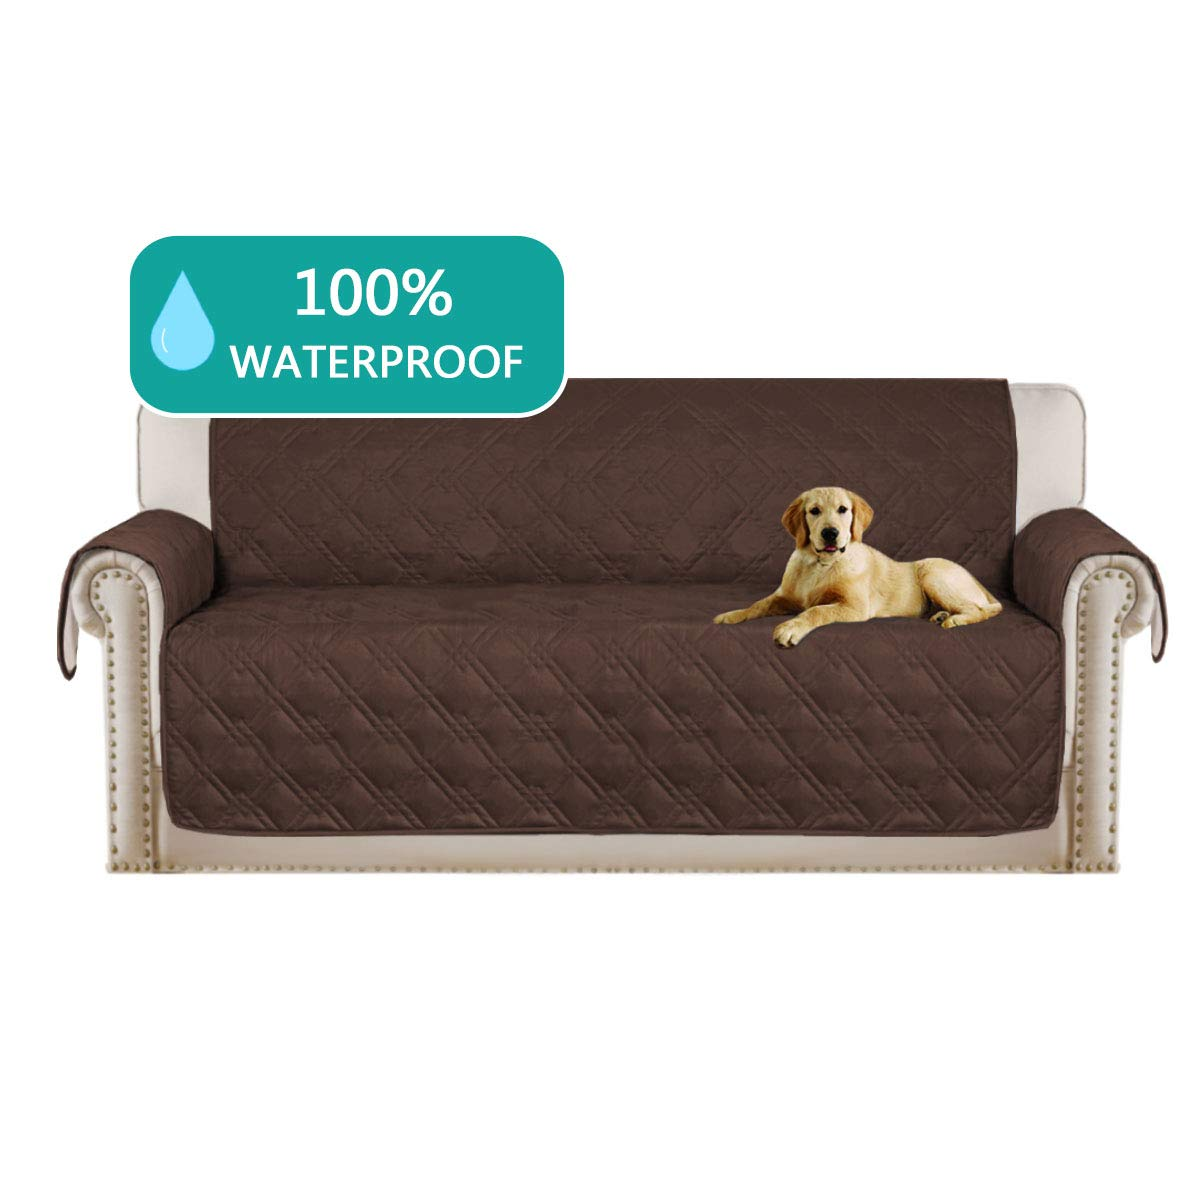 Turquoize Deluxe Quilted Furniture Protector Sofa Slipcover 100% Waterproof with Anti-Skip Little Dog Paw Print, Machine Washable, Slipcover Perfect for Pets and Kids(Sofa,75''x112'') Brown